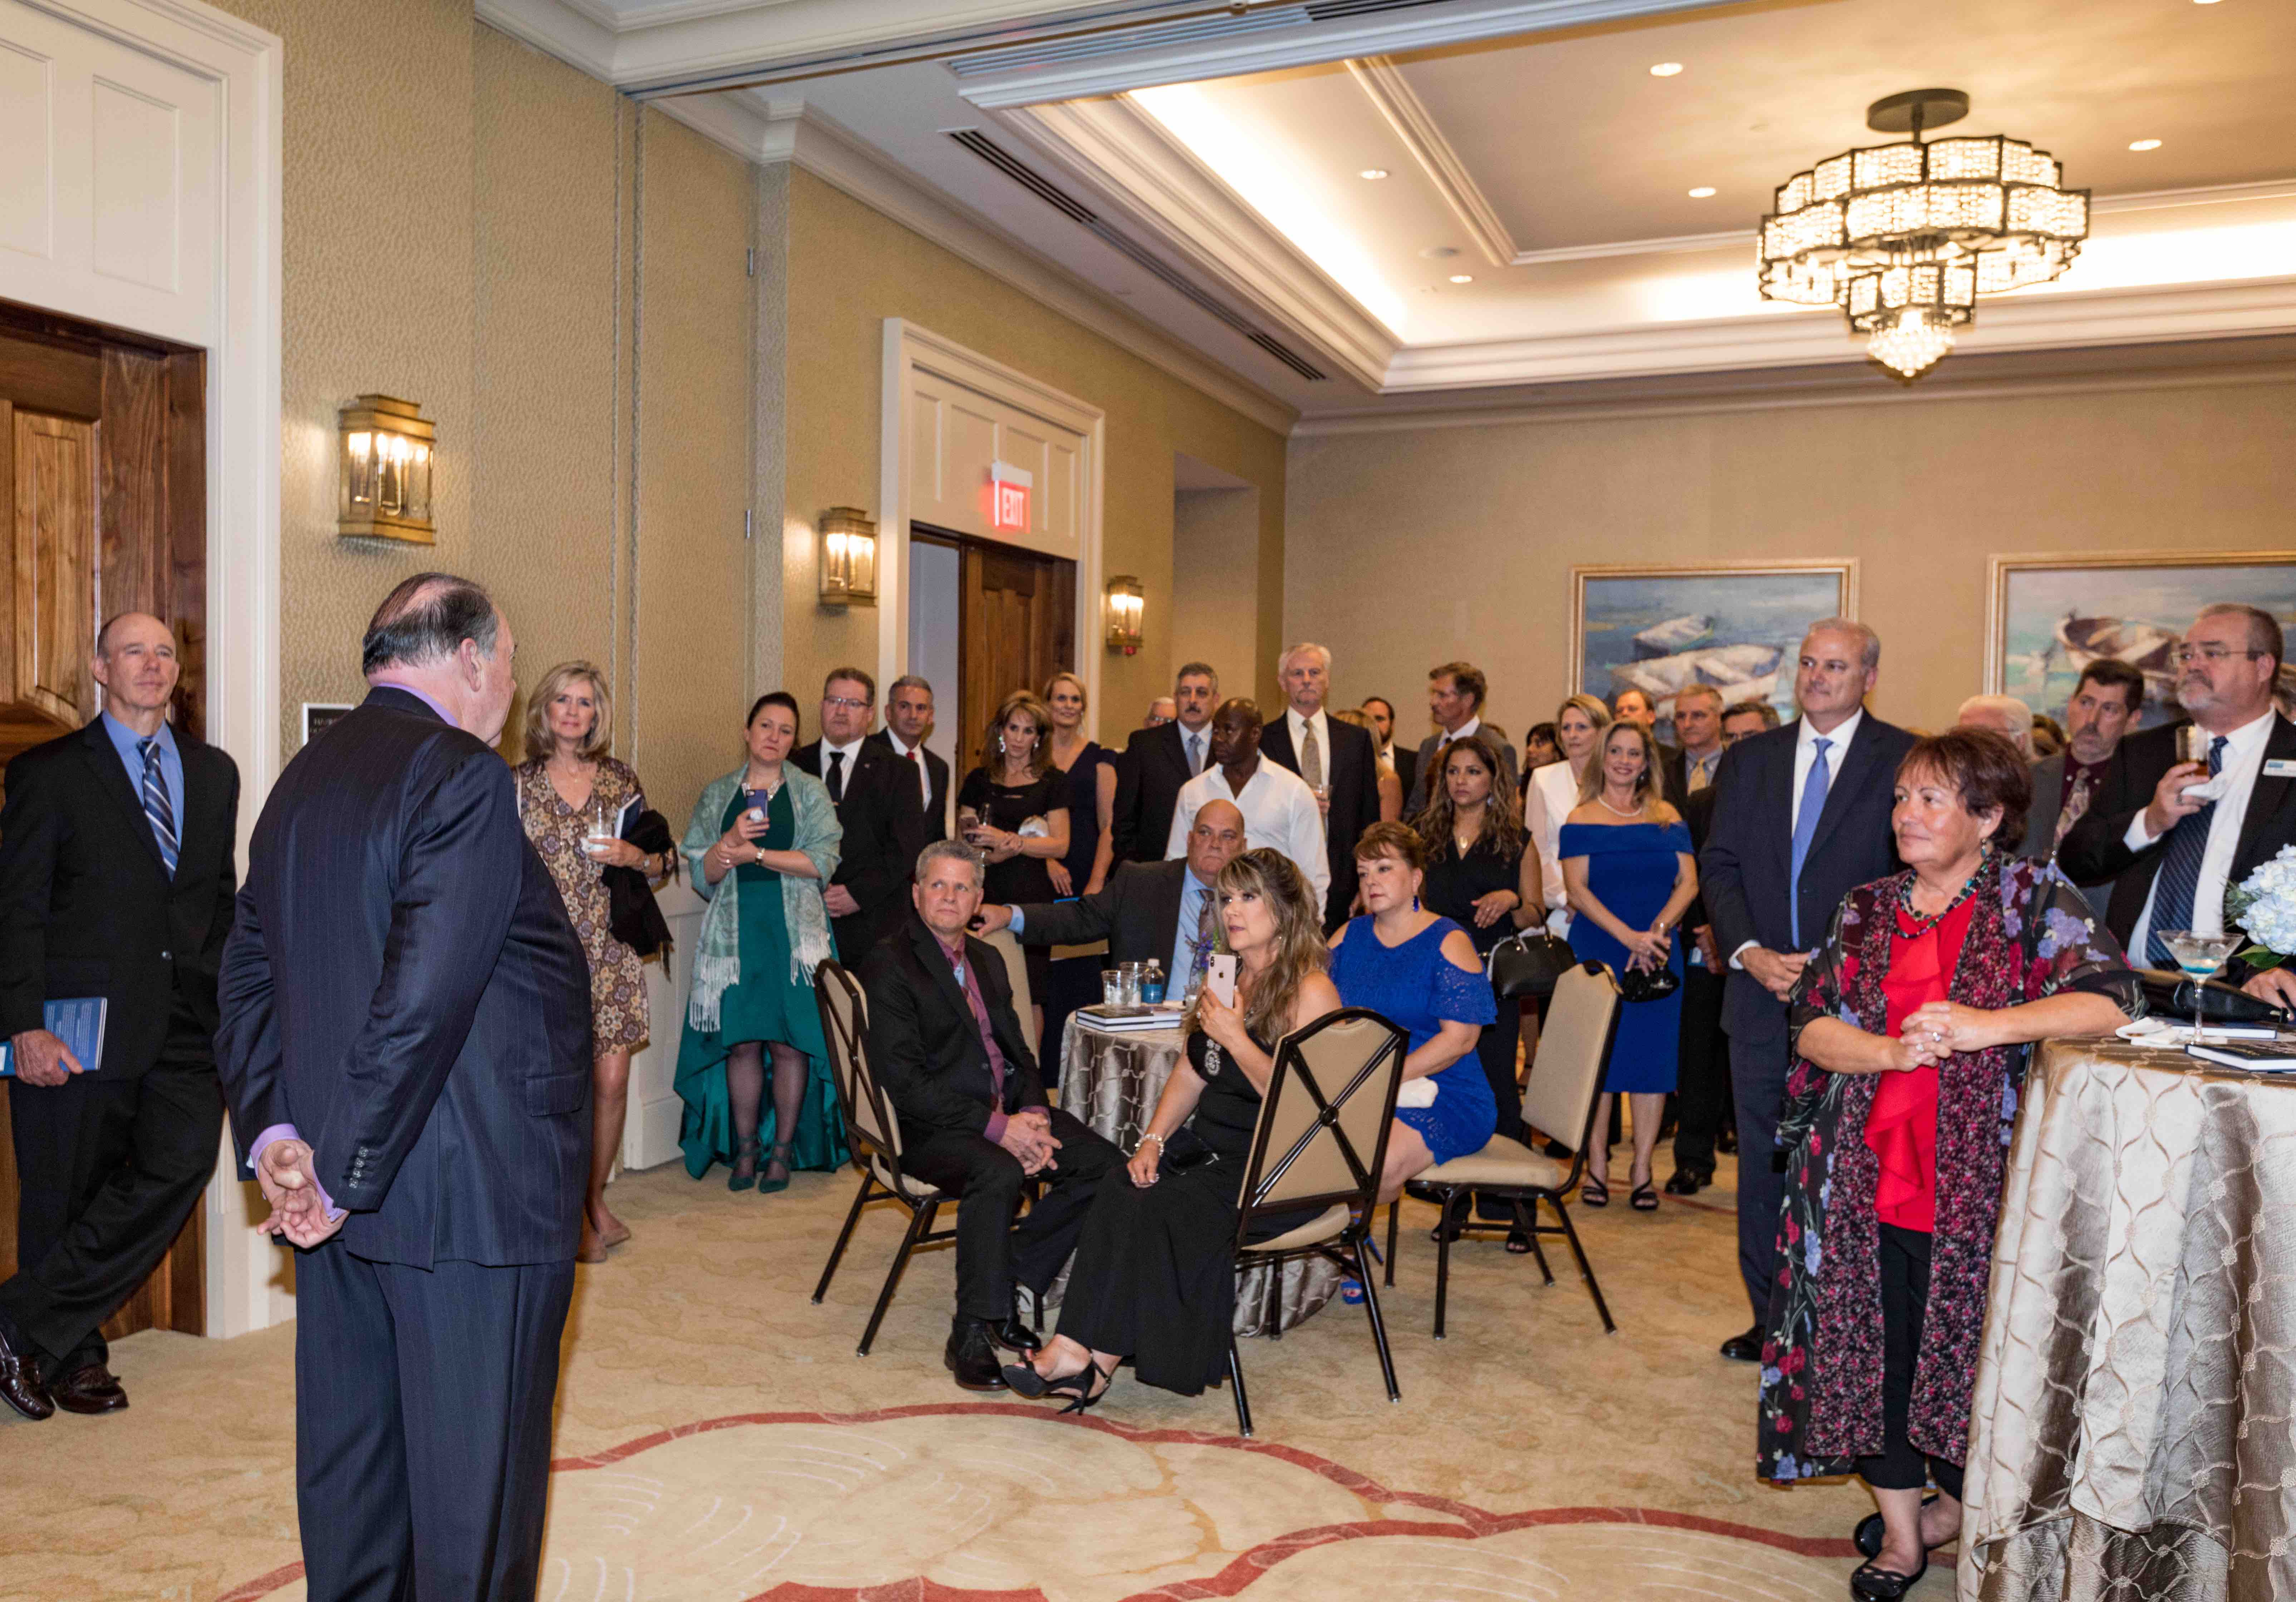 INAUGURAL BLUE & WHITE GALA EXCEEDS EXPECTATION